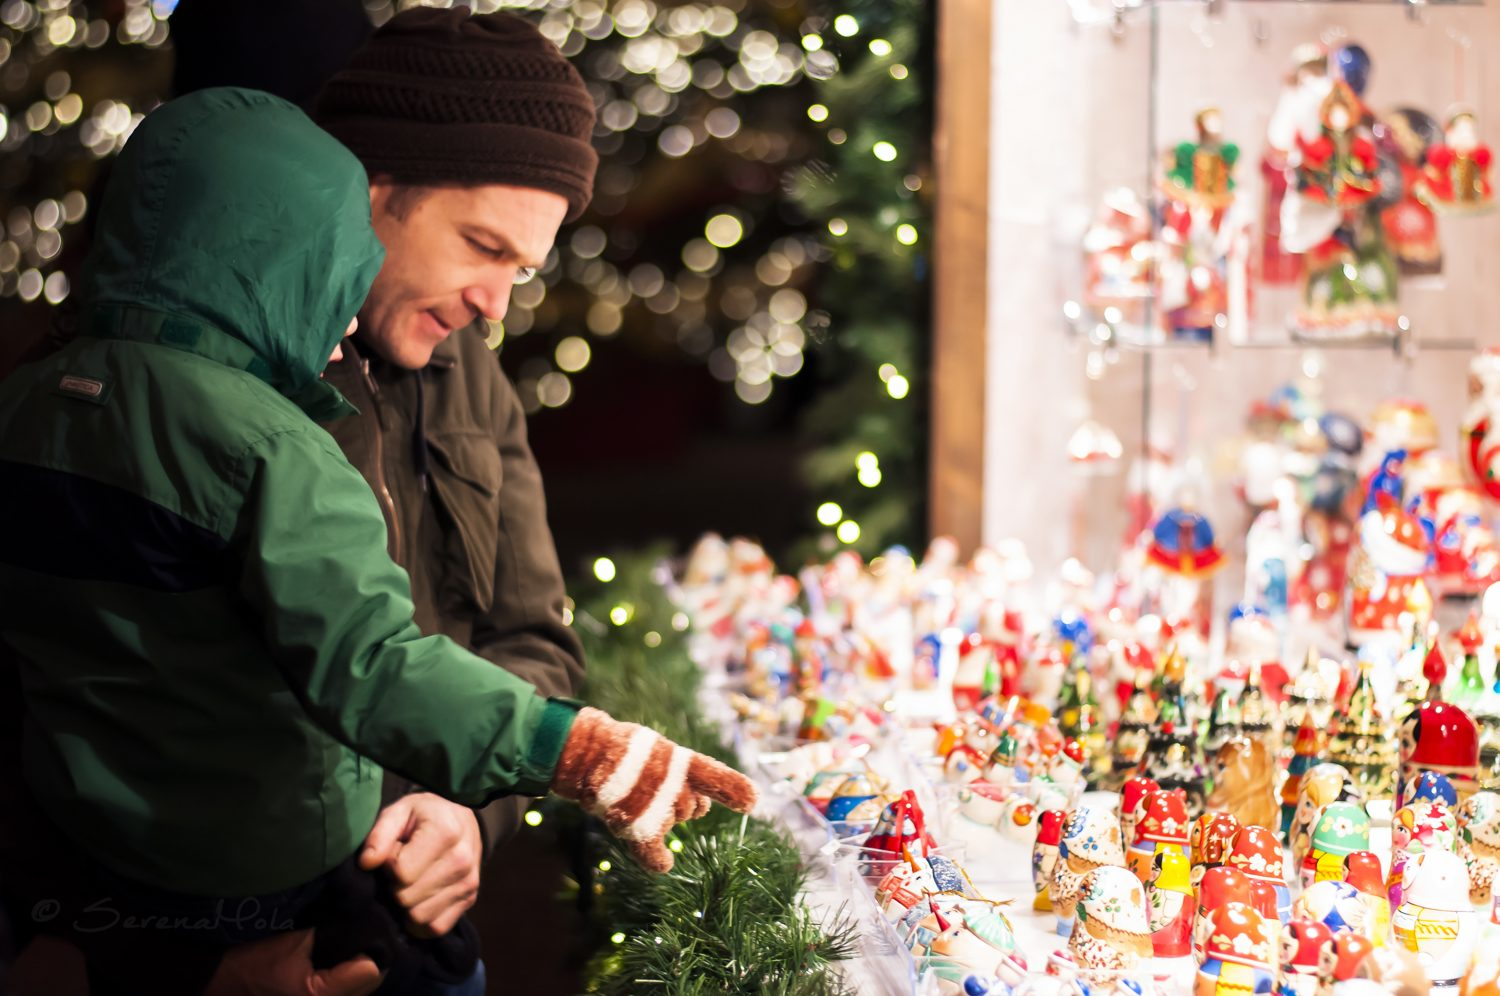 Toronto Christmas Market- How to spend the holidays in Toronto